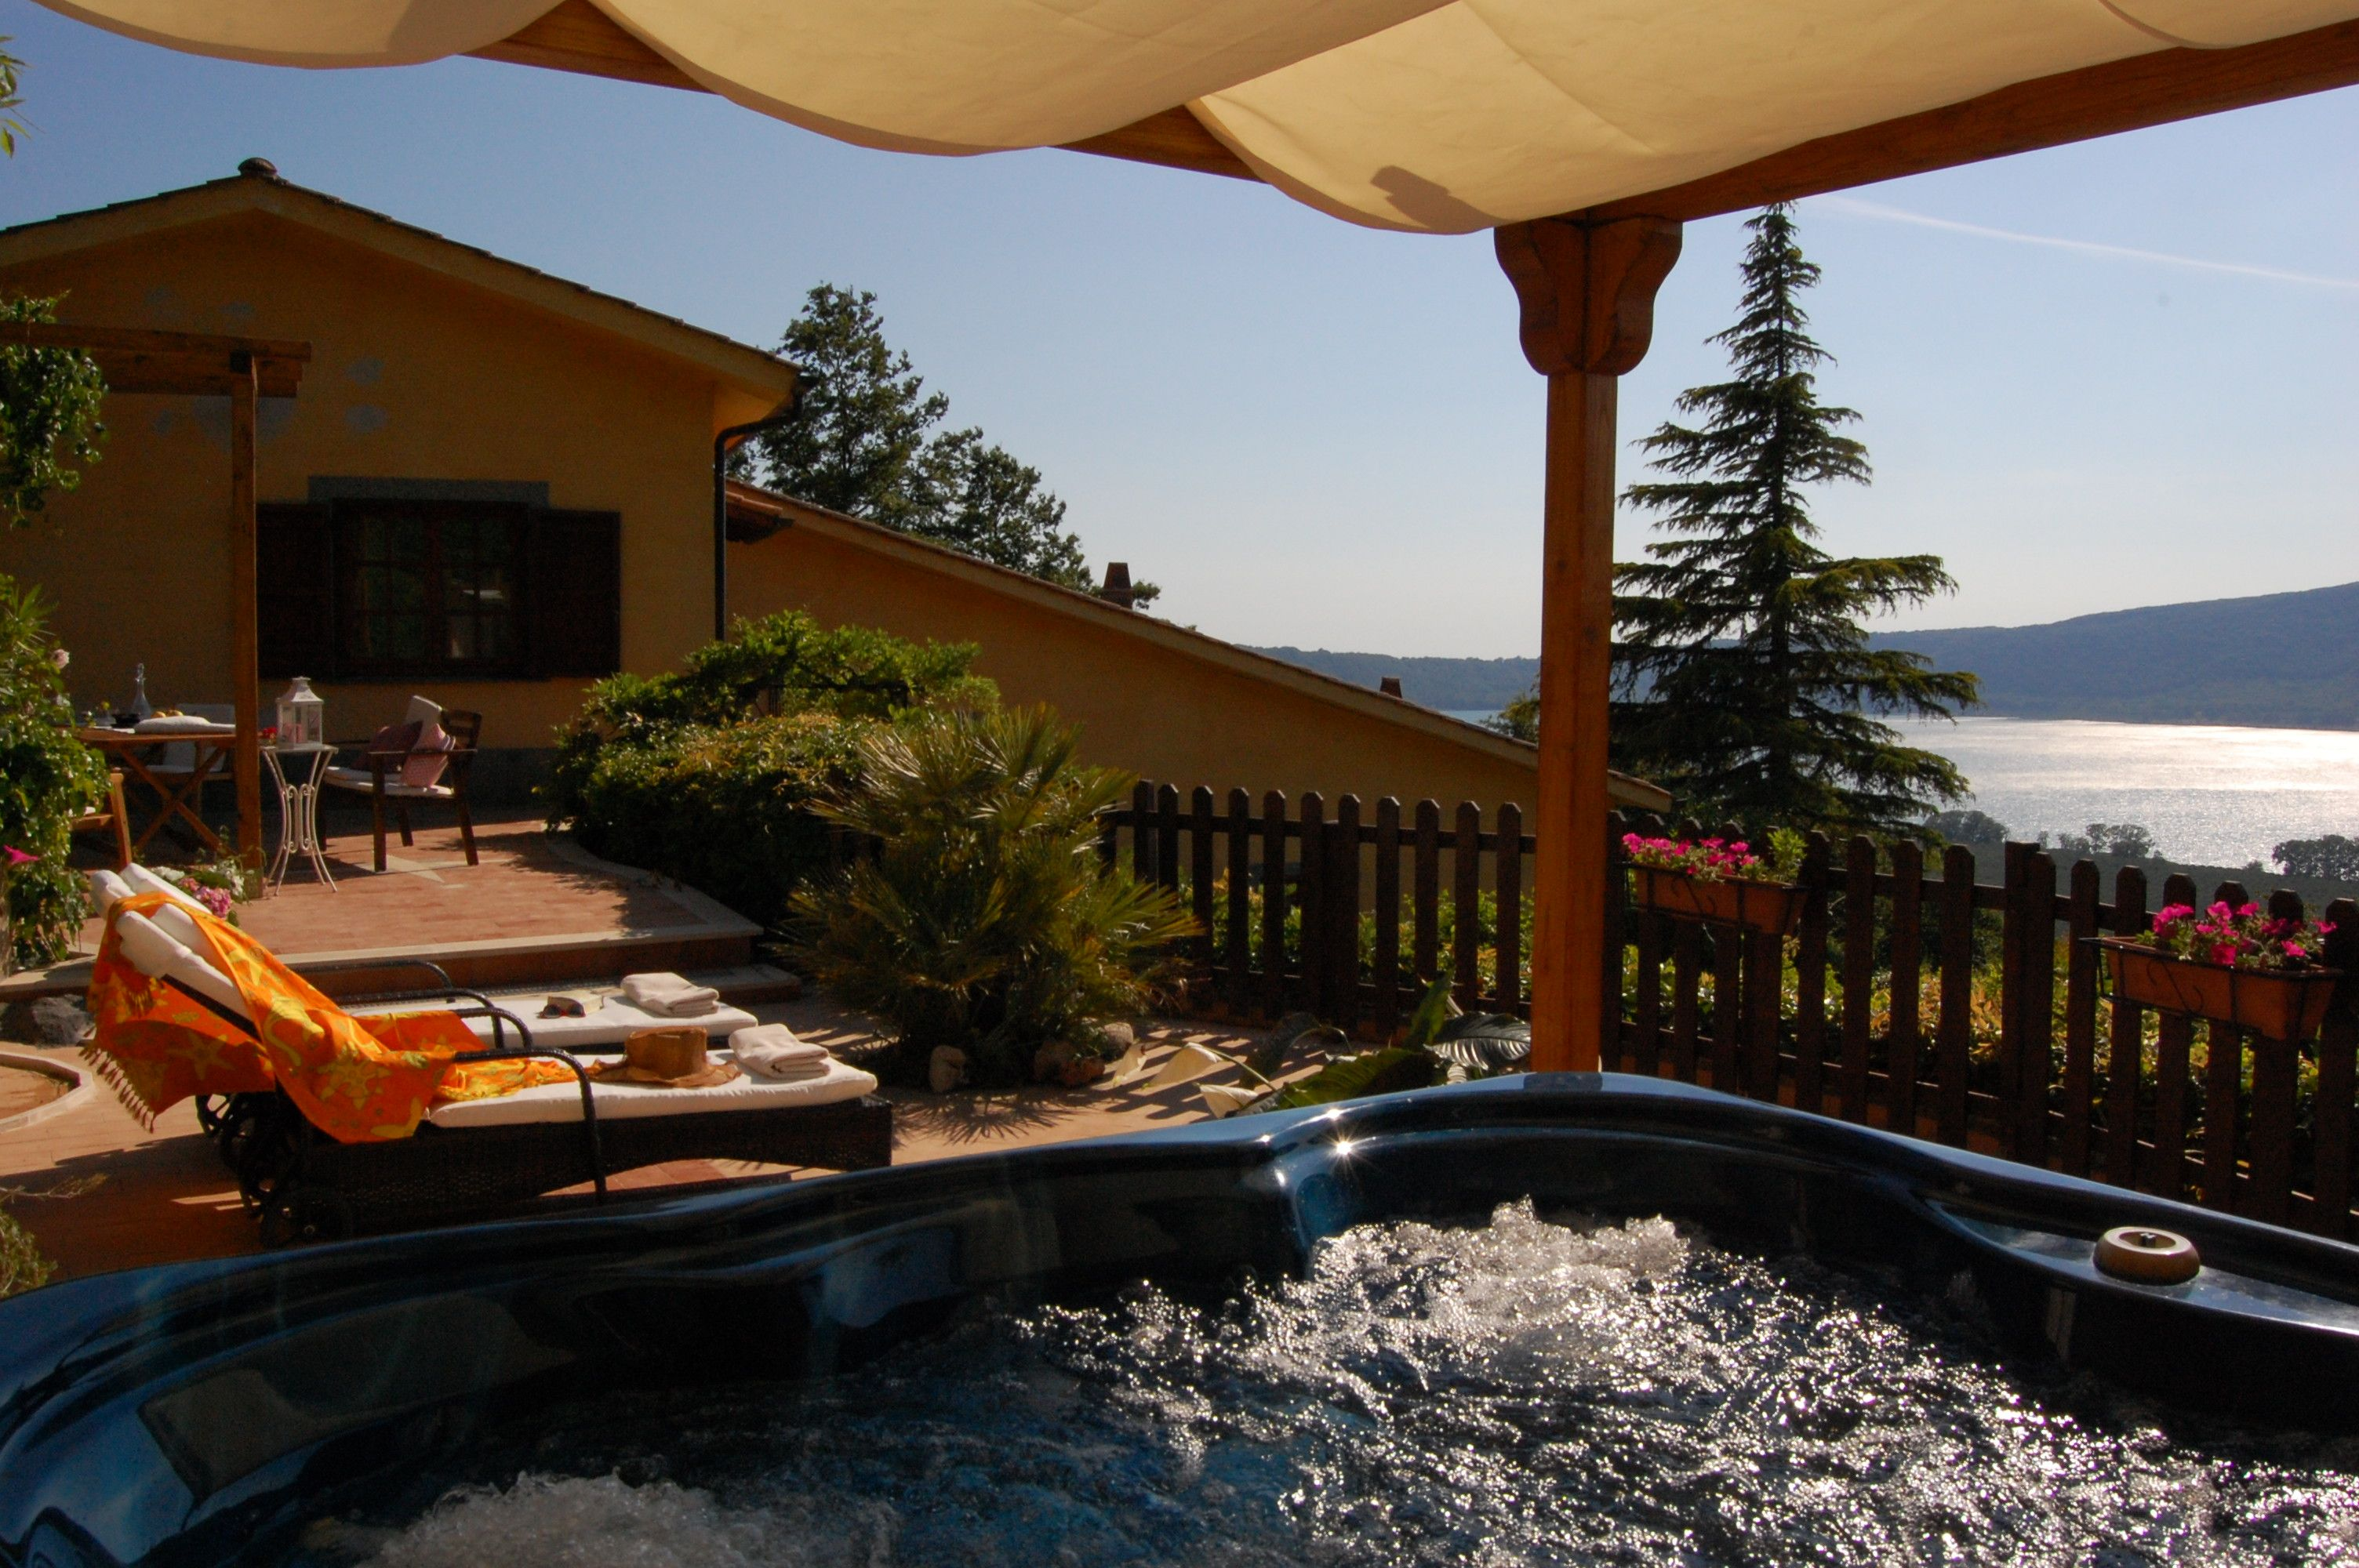 Villa Glicine with private Jacuzzi in front of the Lake